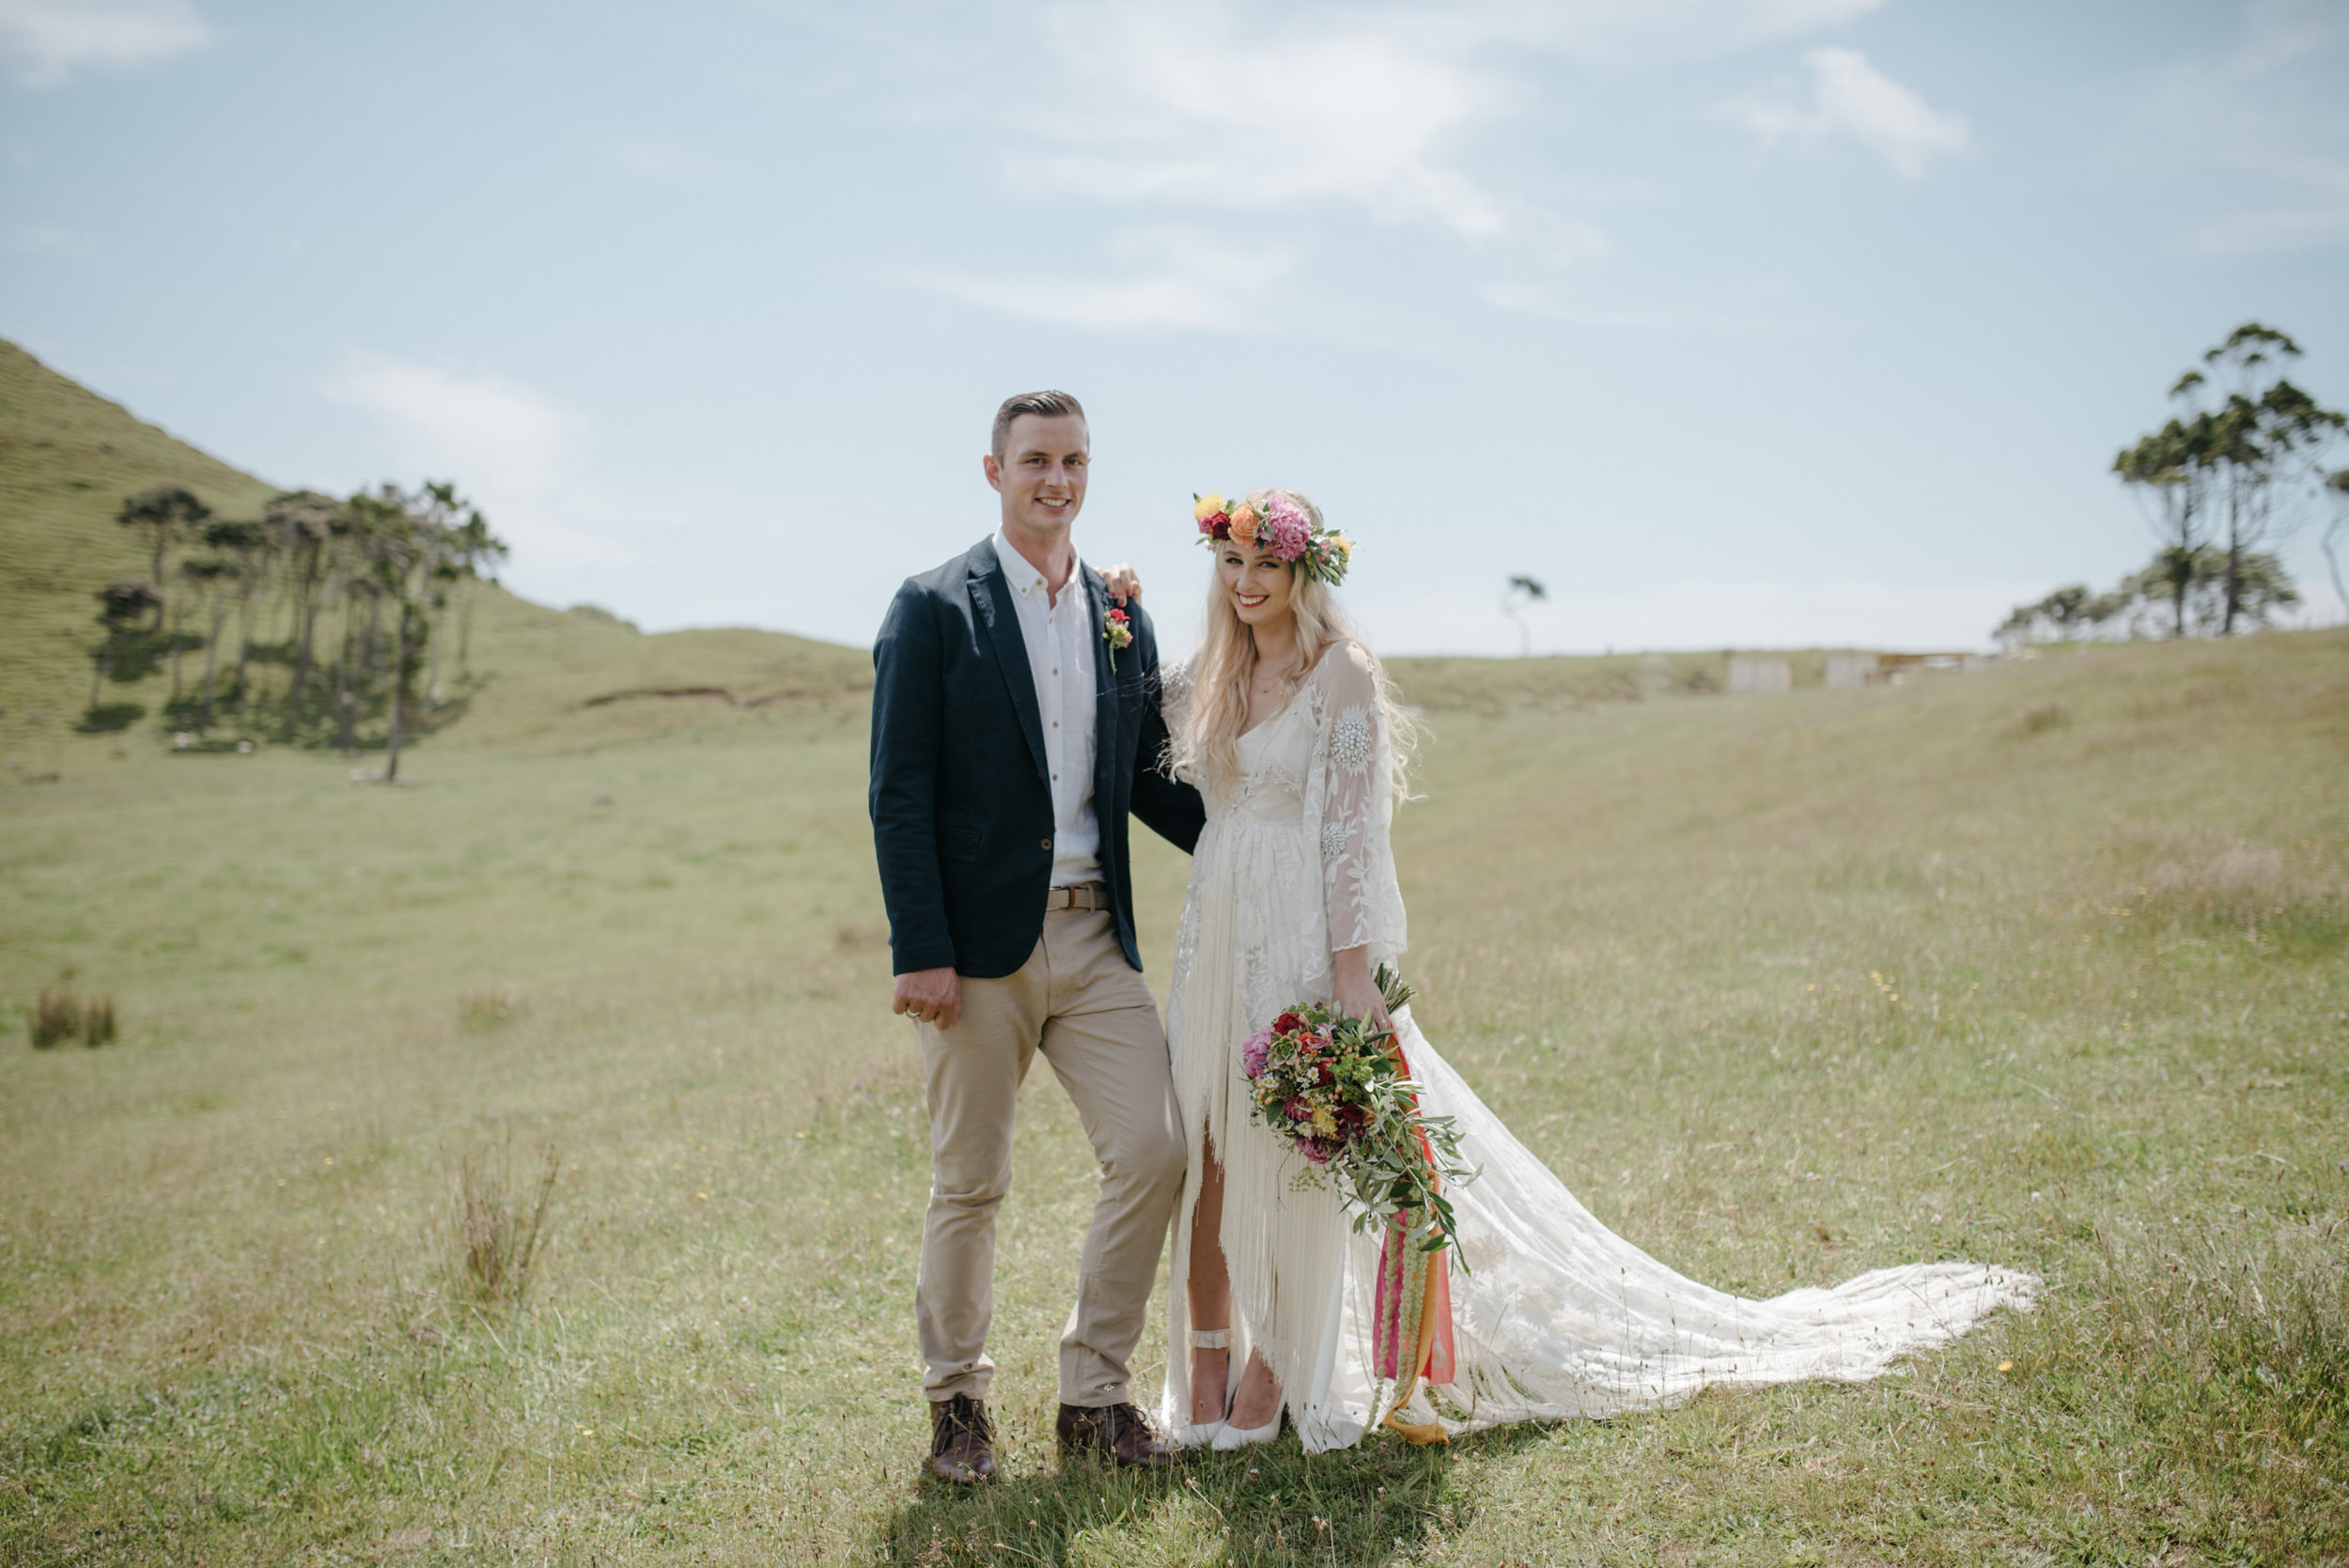 Josie and Ryan EPHEMERAL CREATIVE Jonkers Farm New Zealand Wedding boho bride and groom